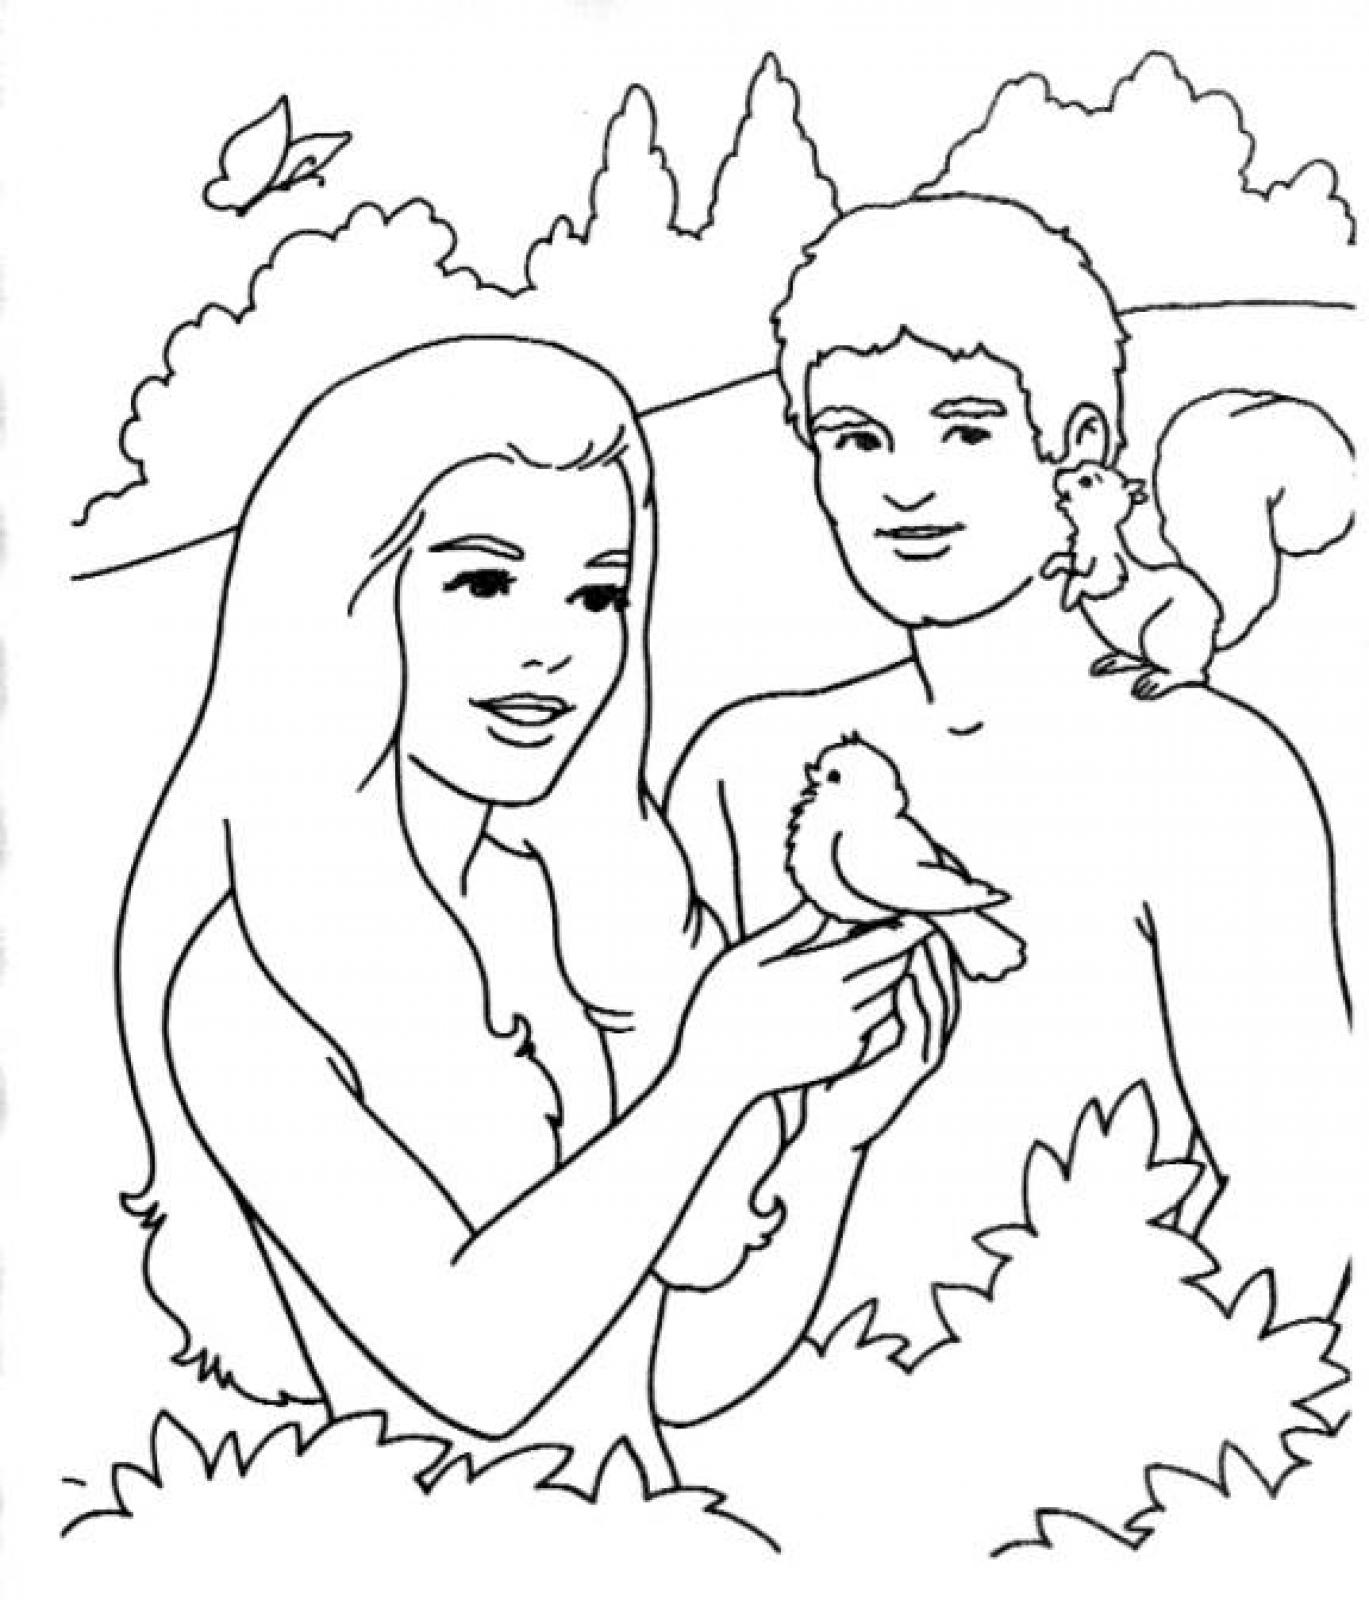 coloring pictures of adam and eve adam and eve coloring pages adam and eve sunday school pictures coloring eve adam and of